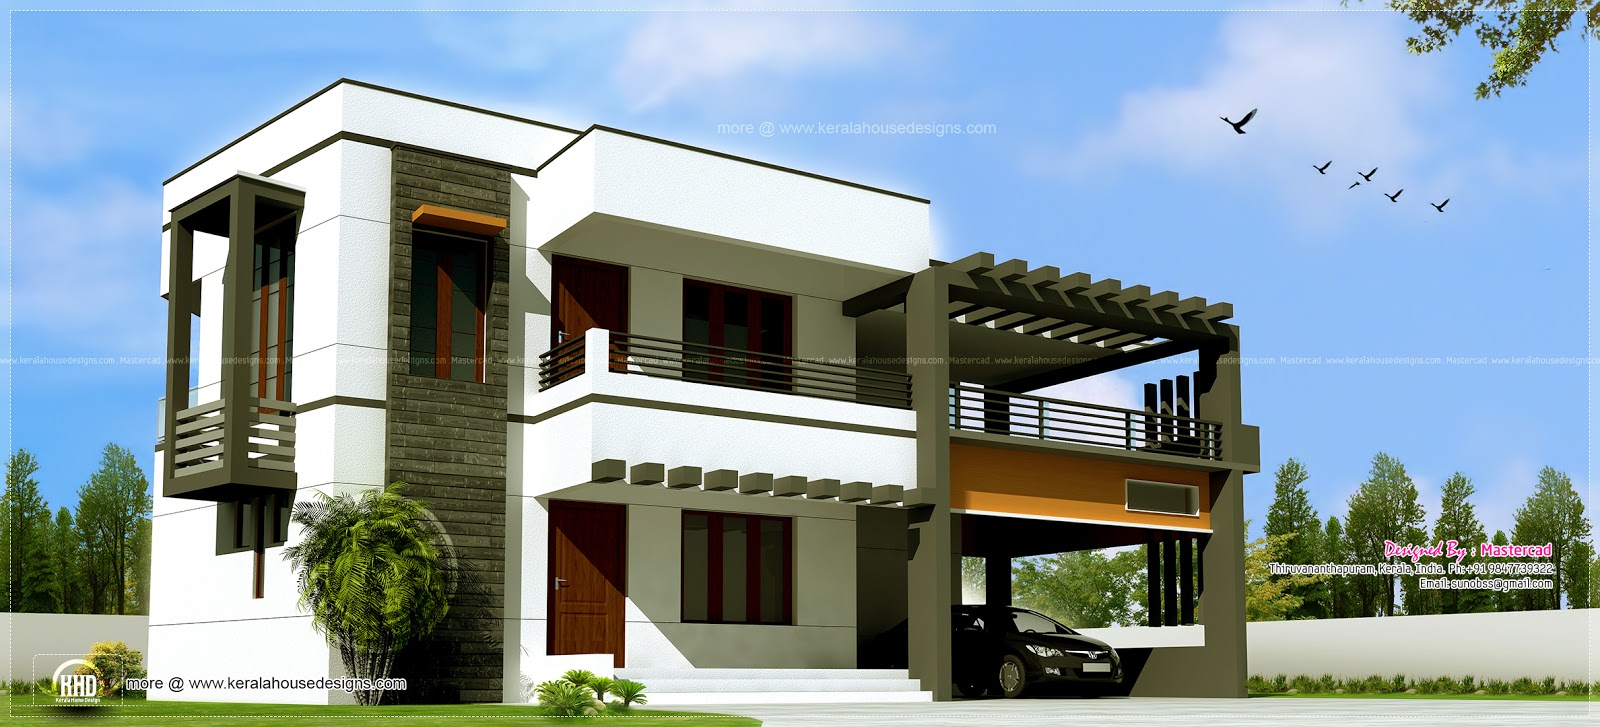 town plan kerala house html with 3012 Sqfeet Contemporary House on 10 Marla Corner Plot 3d Front Elevation also New Modern Villa Design additionally Islamabad Homes Designs Pakistan also Handicap accessible small house plans further 3d Isometric Small House Plans.